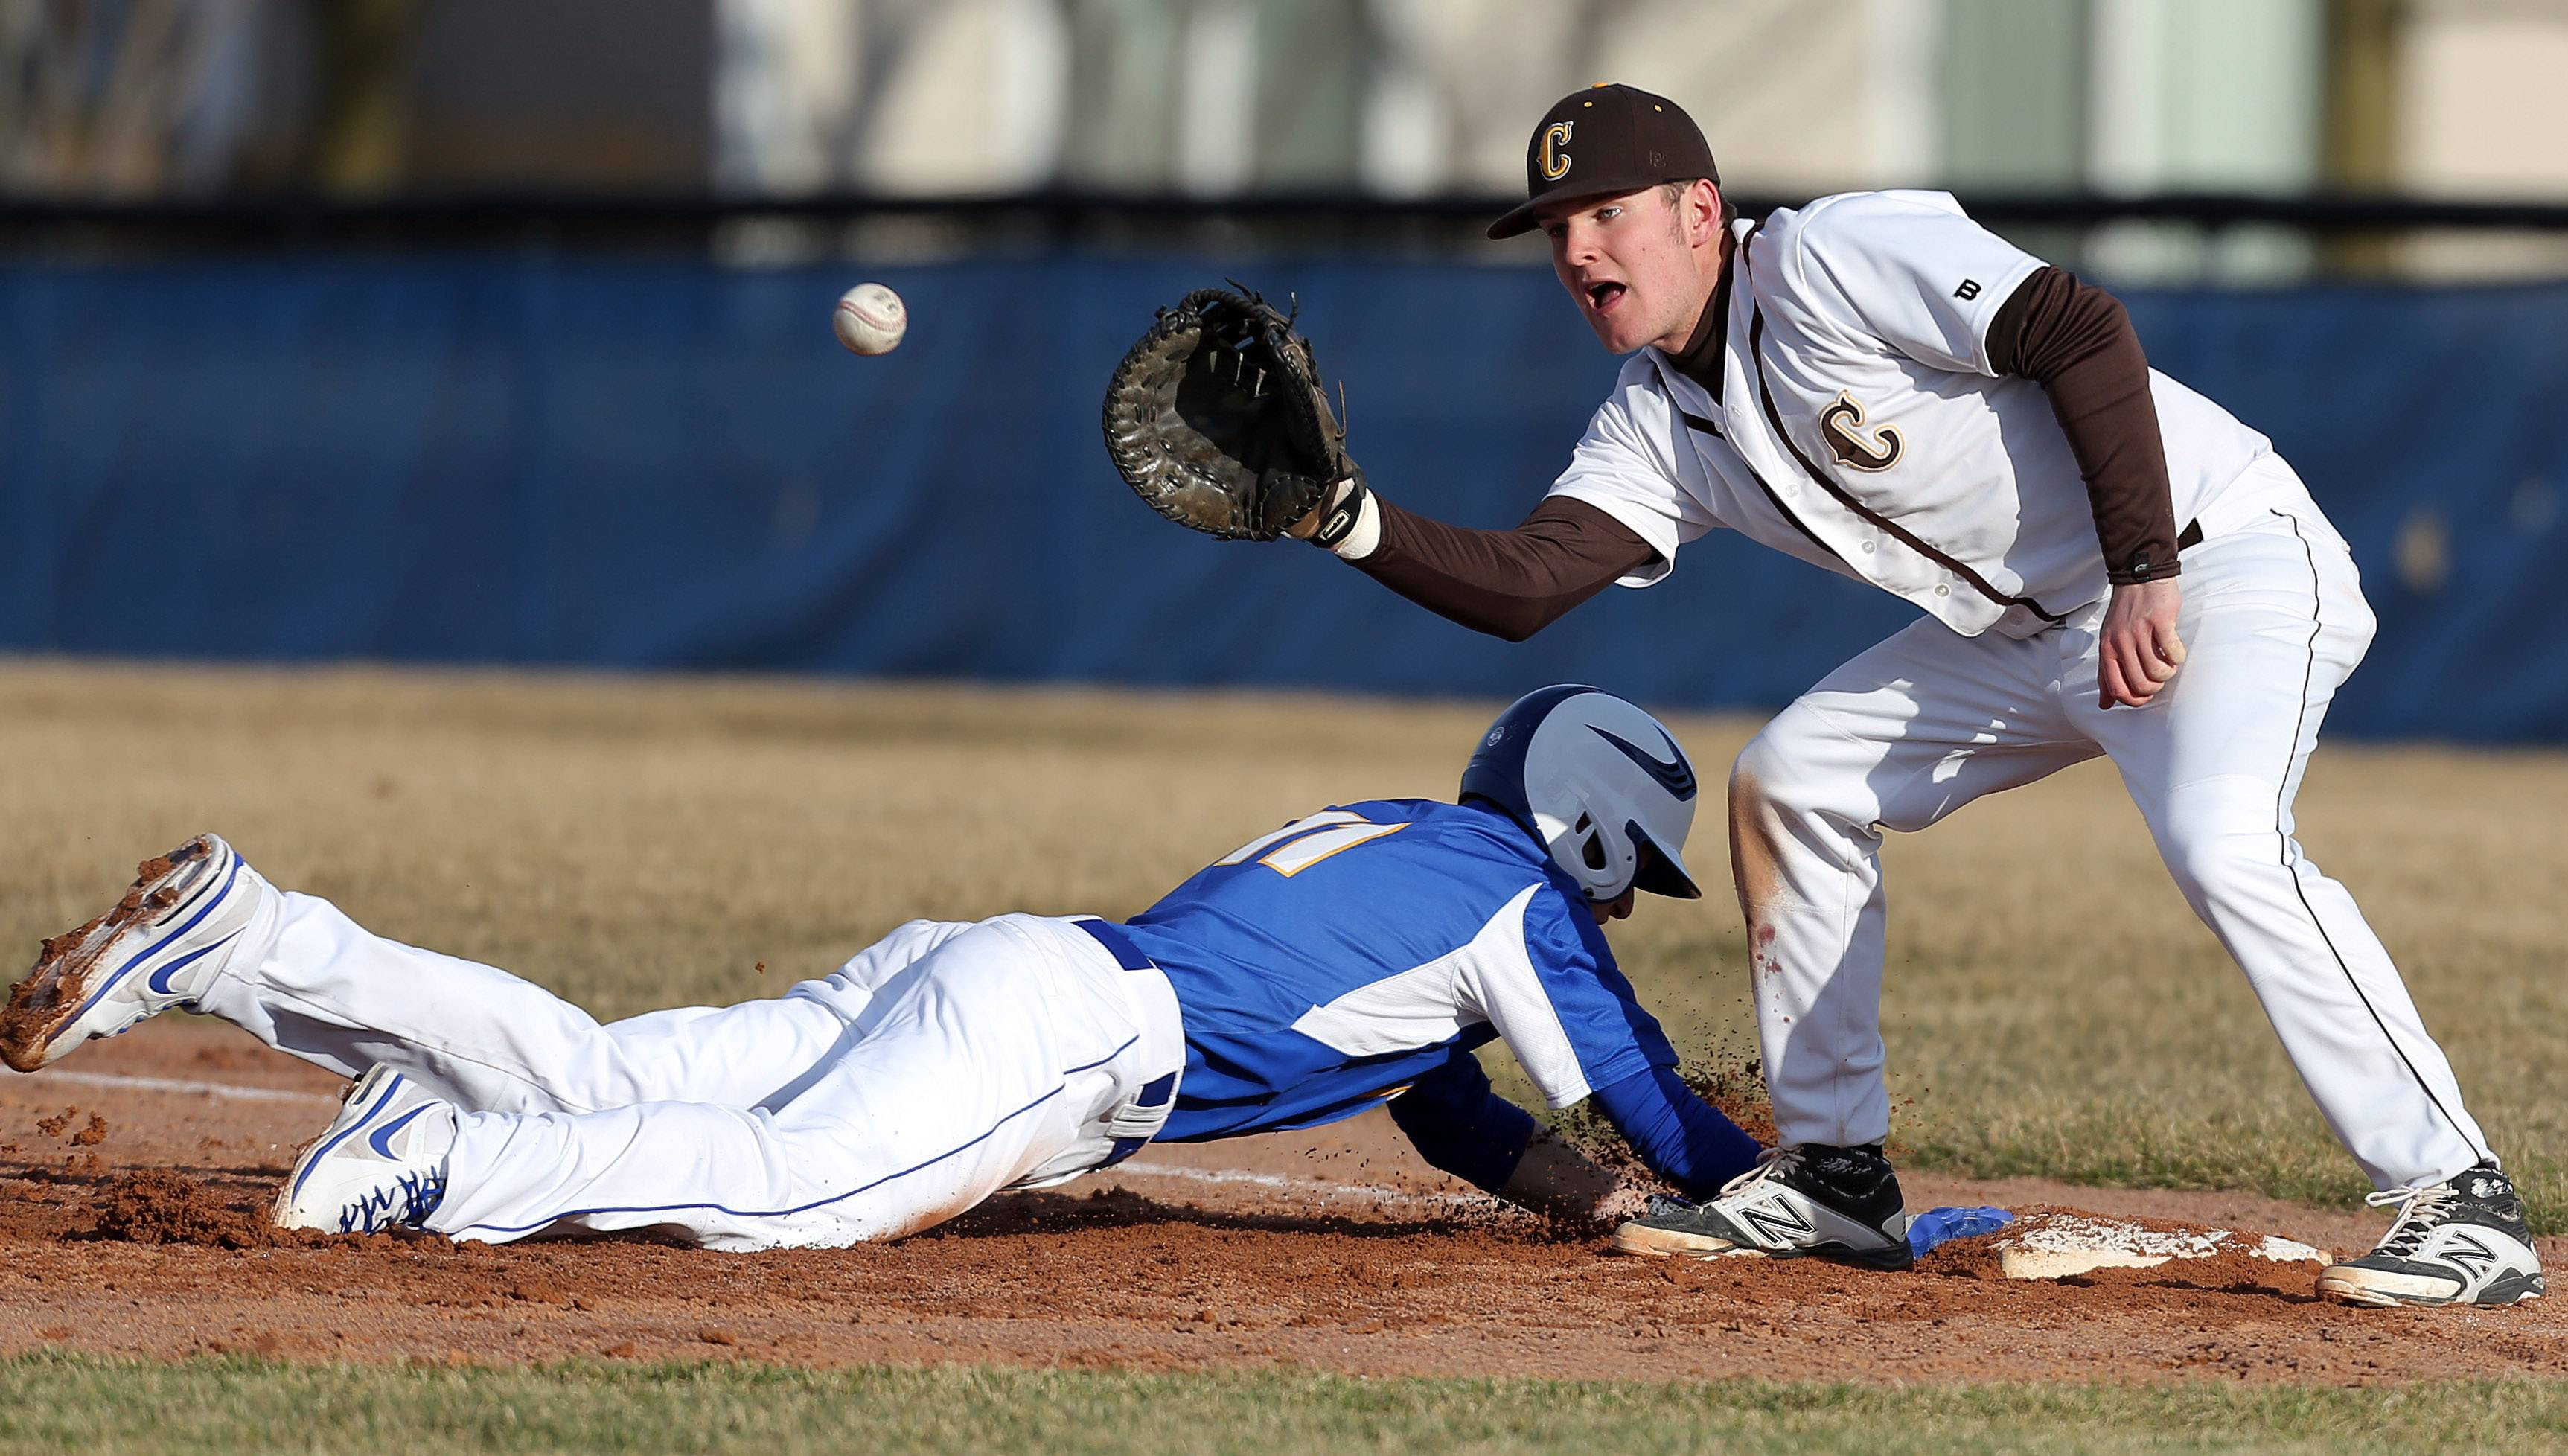 Warren's Chris Mathieu, left, dives back to first, beating the tag by Carmel's Andrew Wienke on Tuesday at Warren.